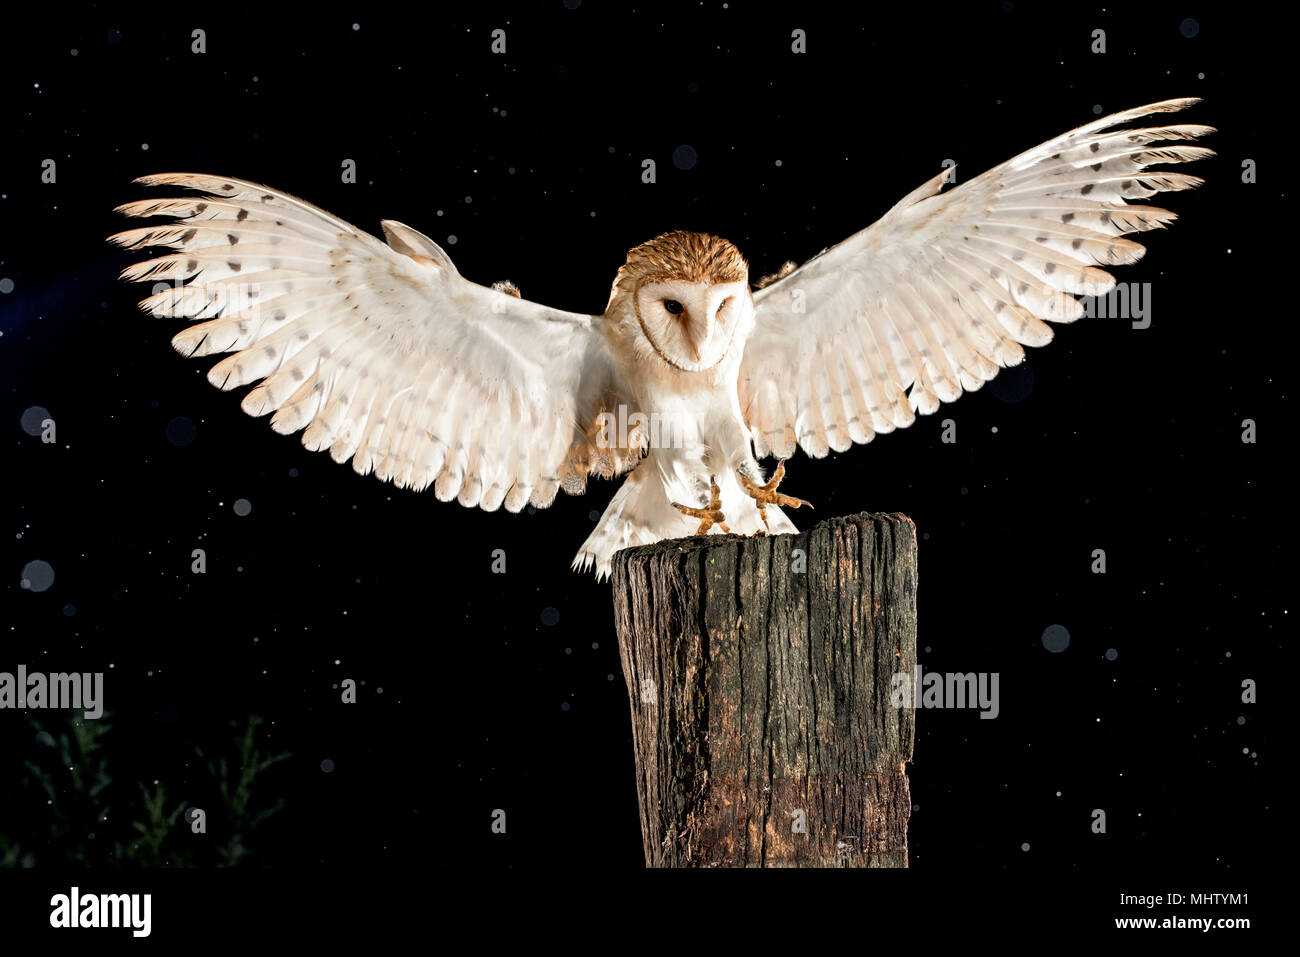 Barn Owl Lechuza Comun Stock Photos Barn Owl Lechuza Comun Stock